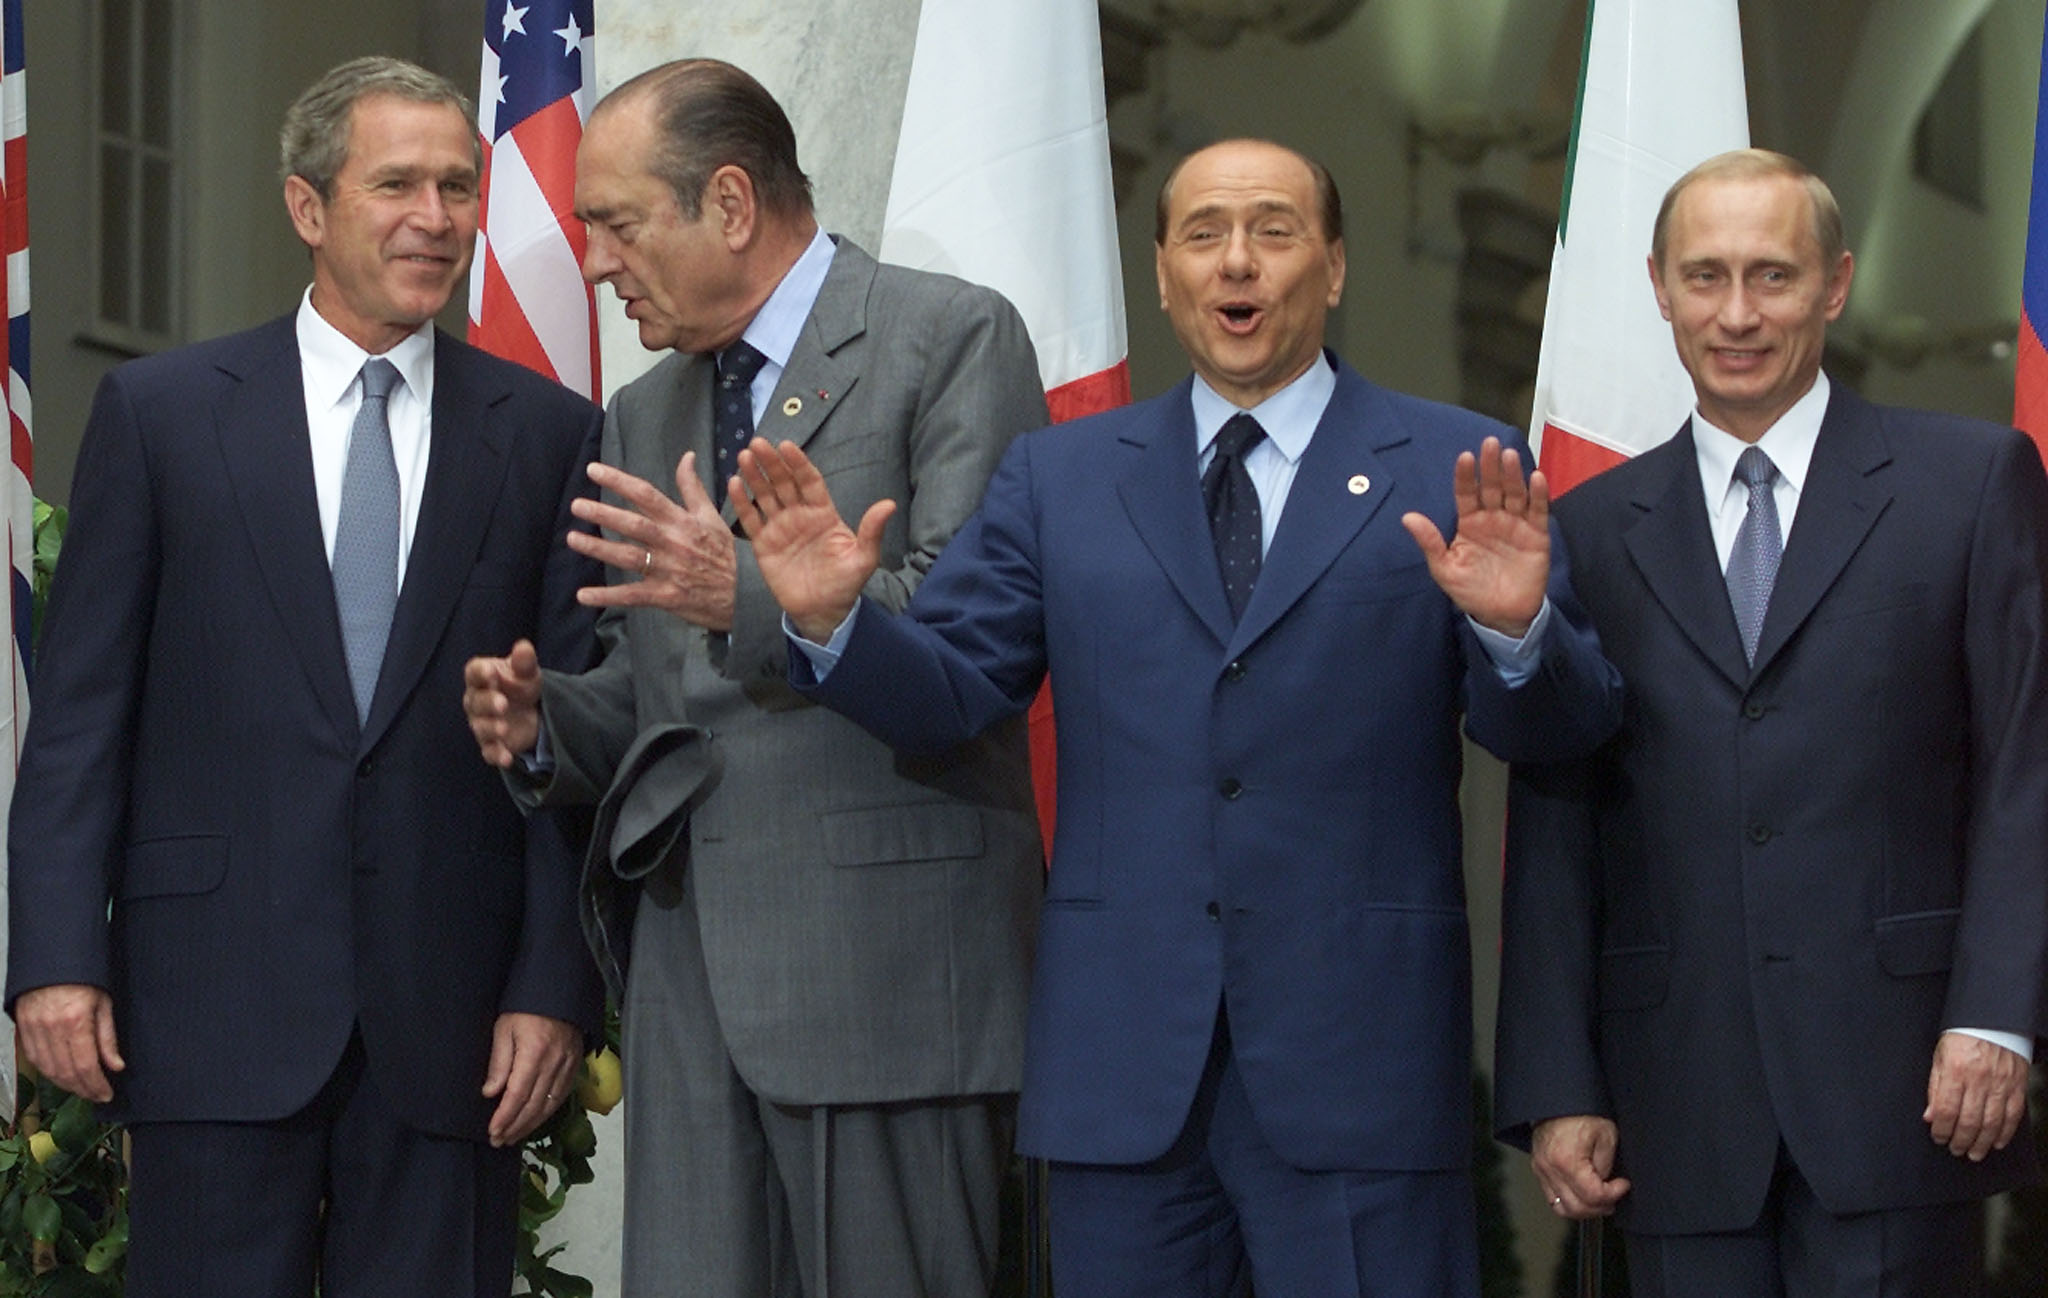 during a G8 summit session in the Palazzo Ducale.